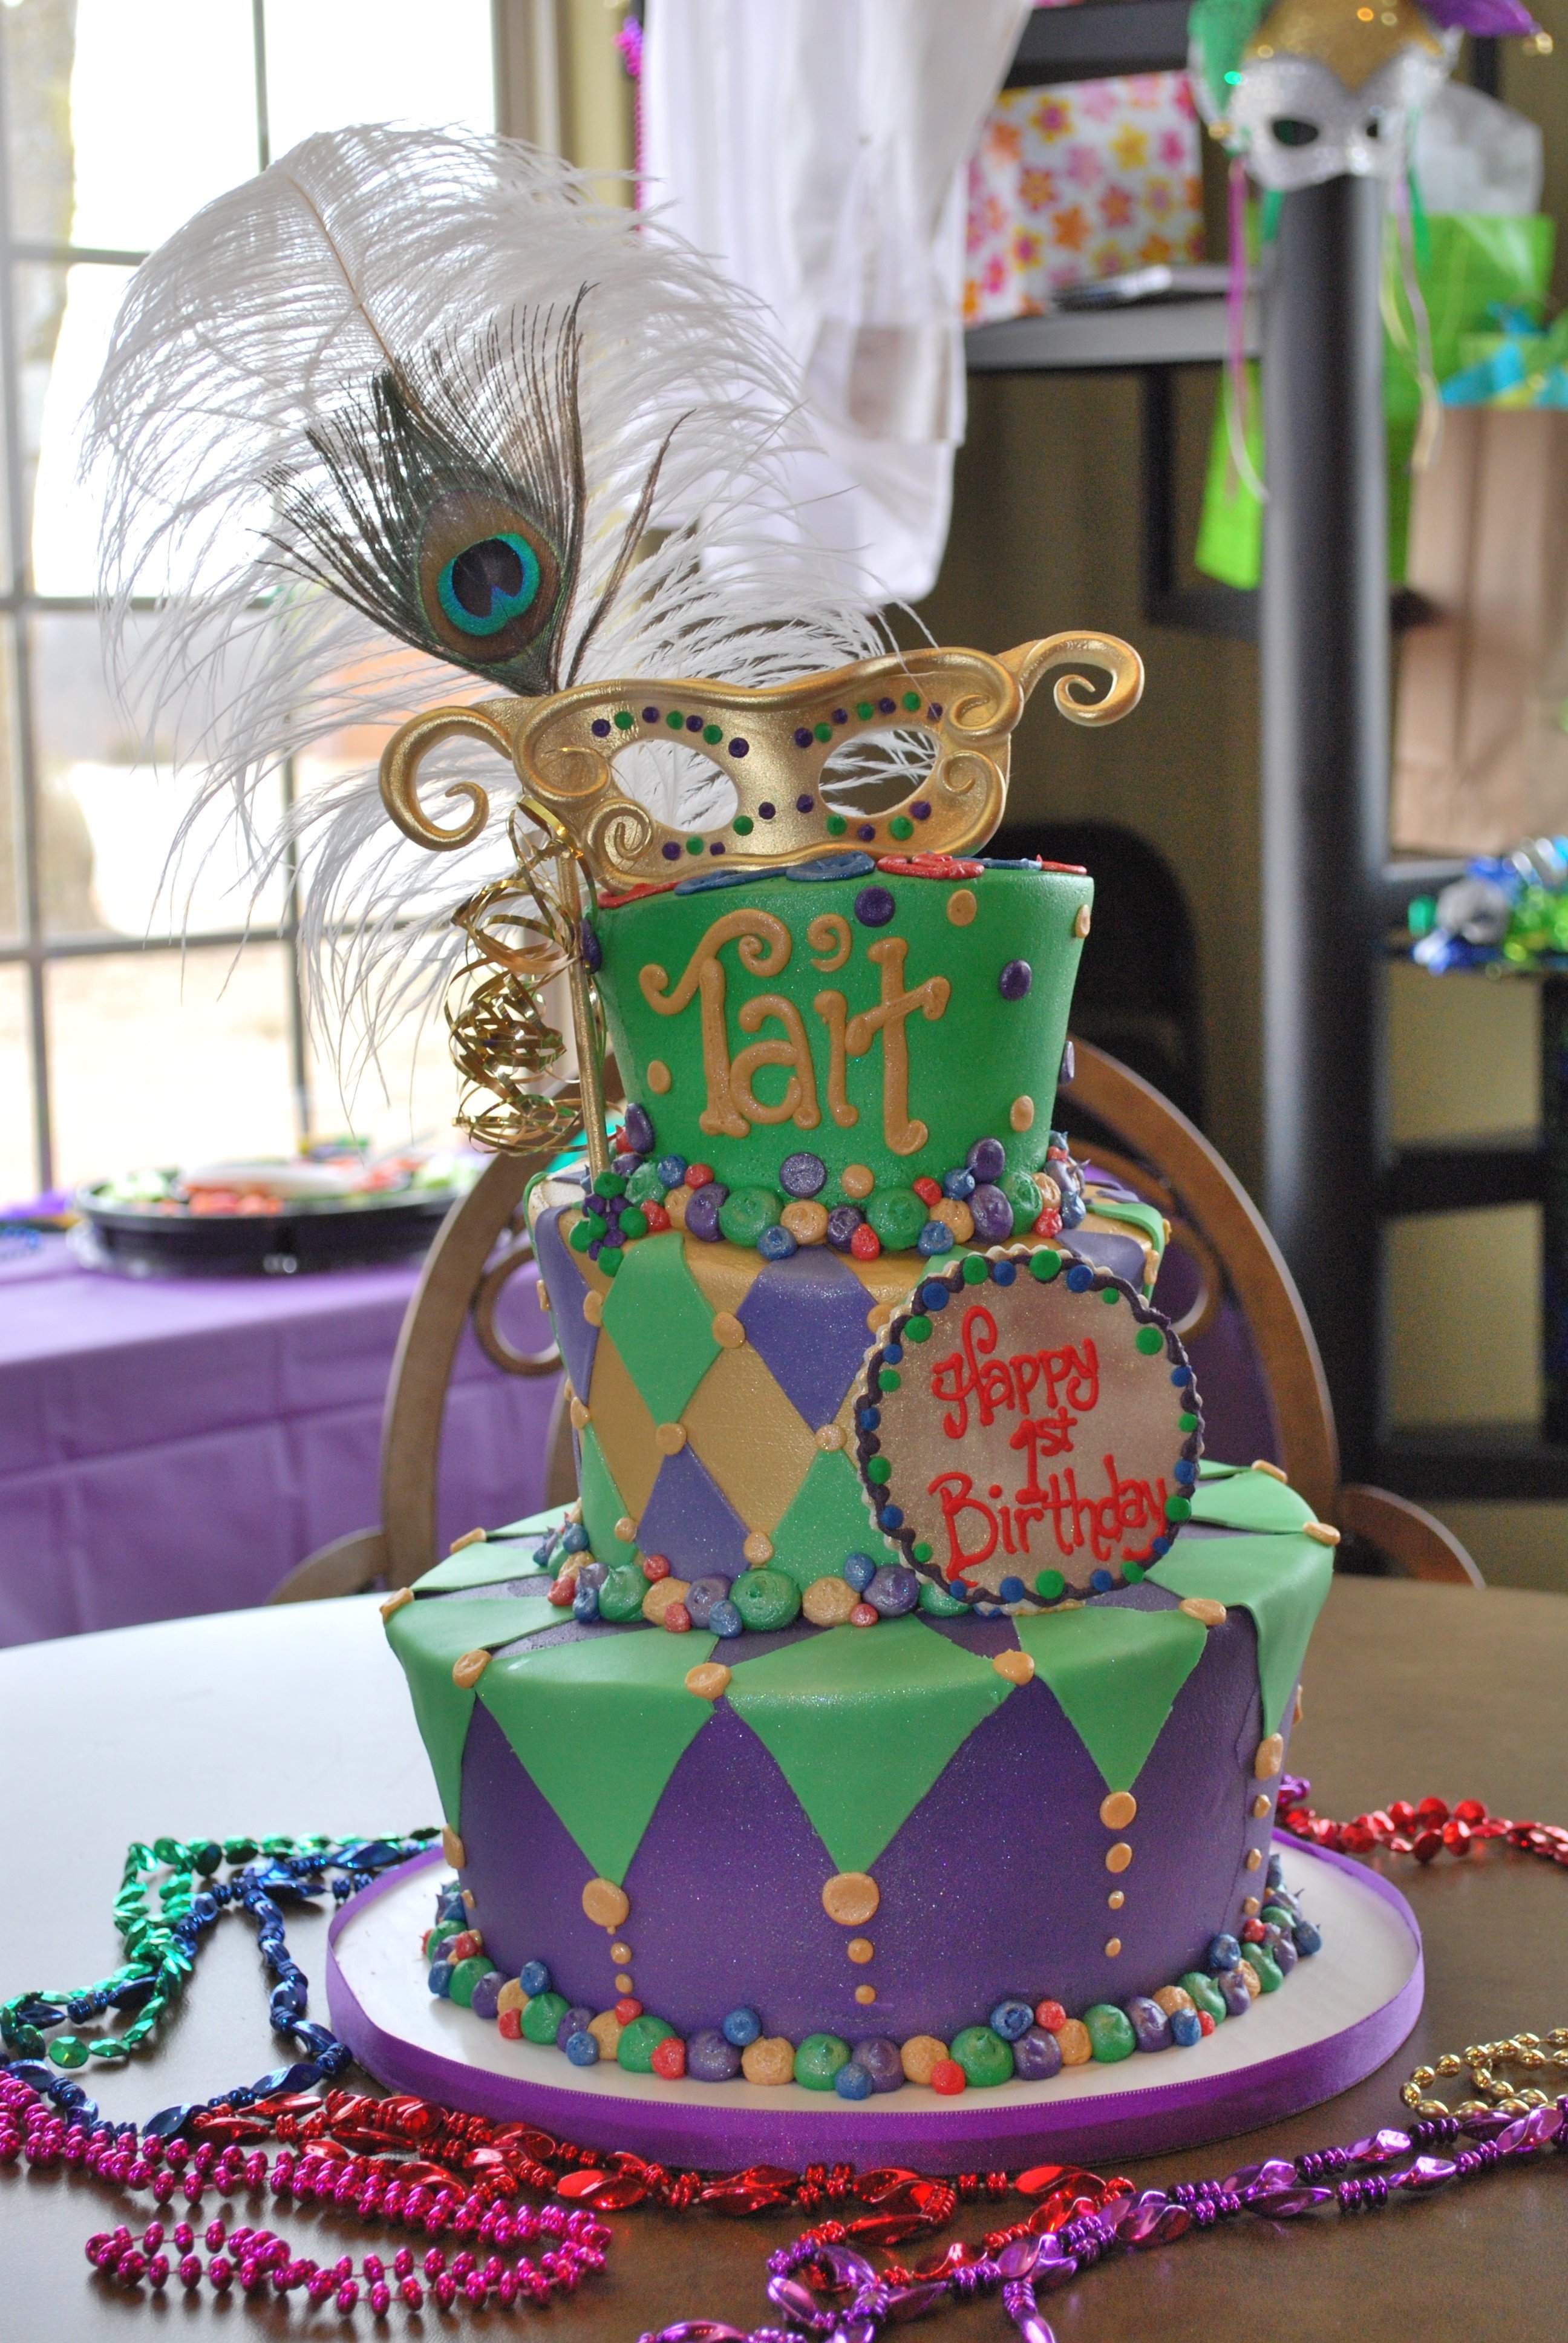 10 Most Recommended Mardi Gras Ideas For A Party first birthday cake mardi gras theme birthday party ideas 2020